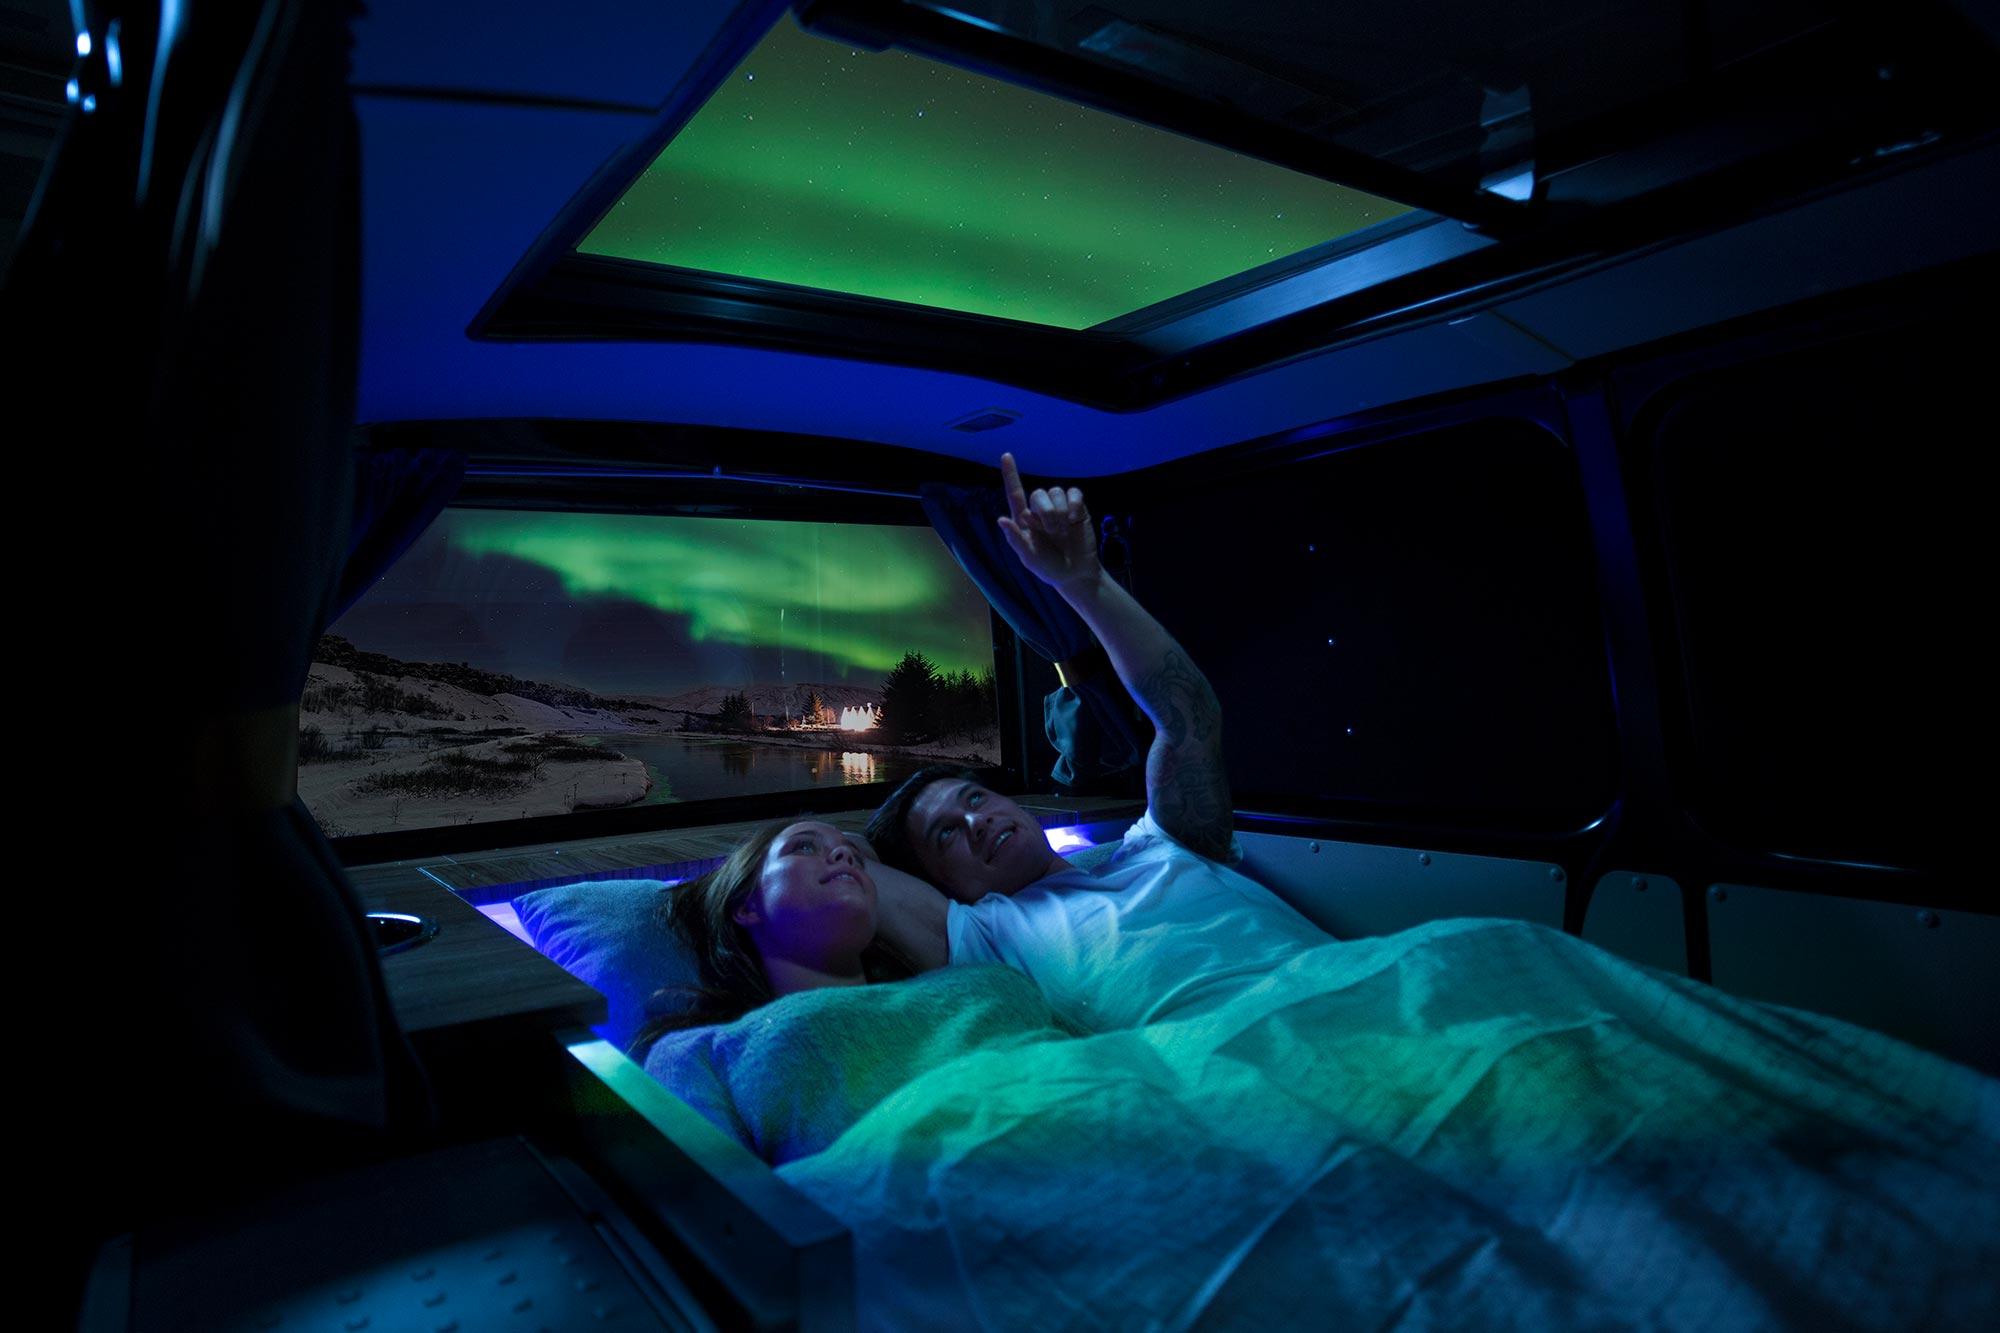 Aurora explorer - 4x4 northern lights camper